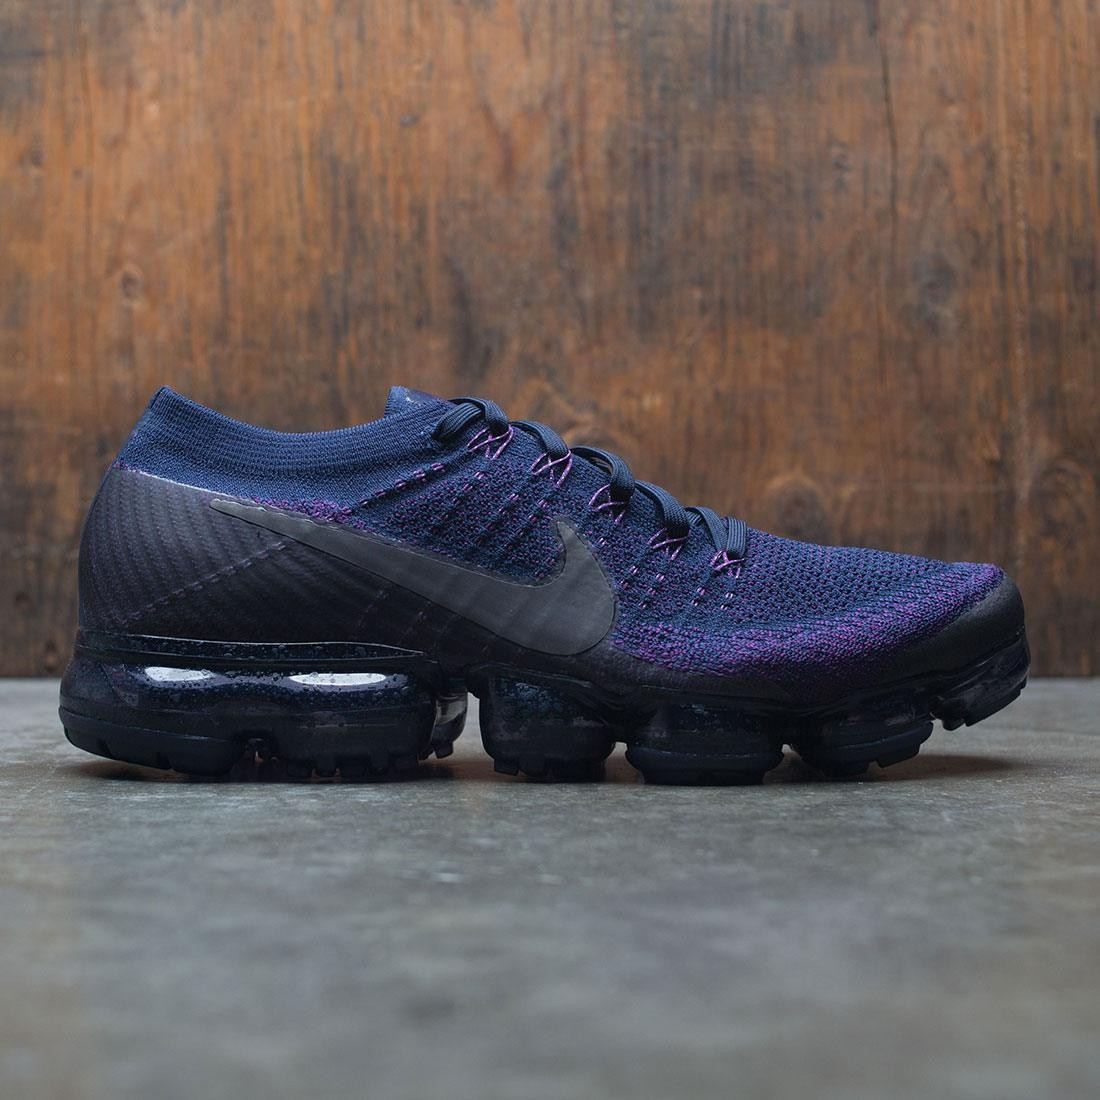 promo code 999a3 2de8d Nike Men Nikelab Air Vapormax Flyknit Running (navy / dark grey-night  purple)